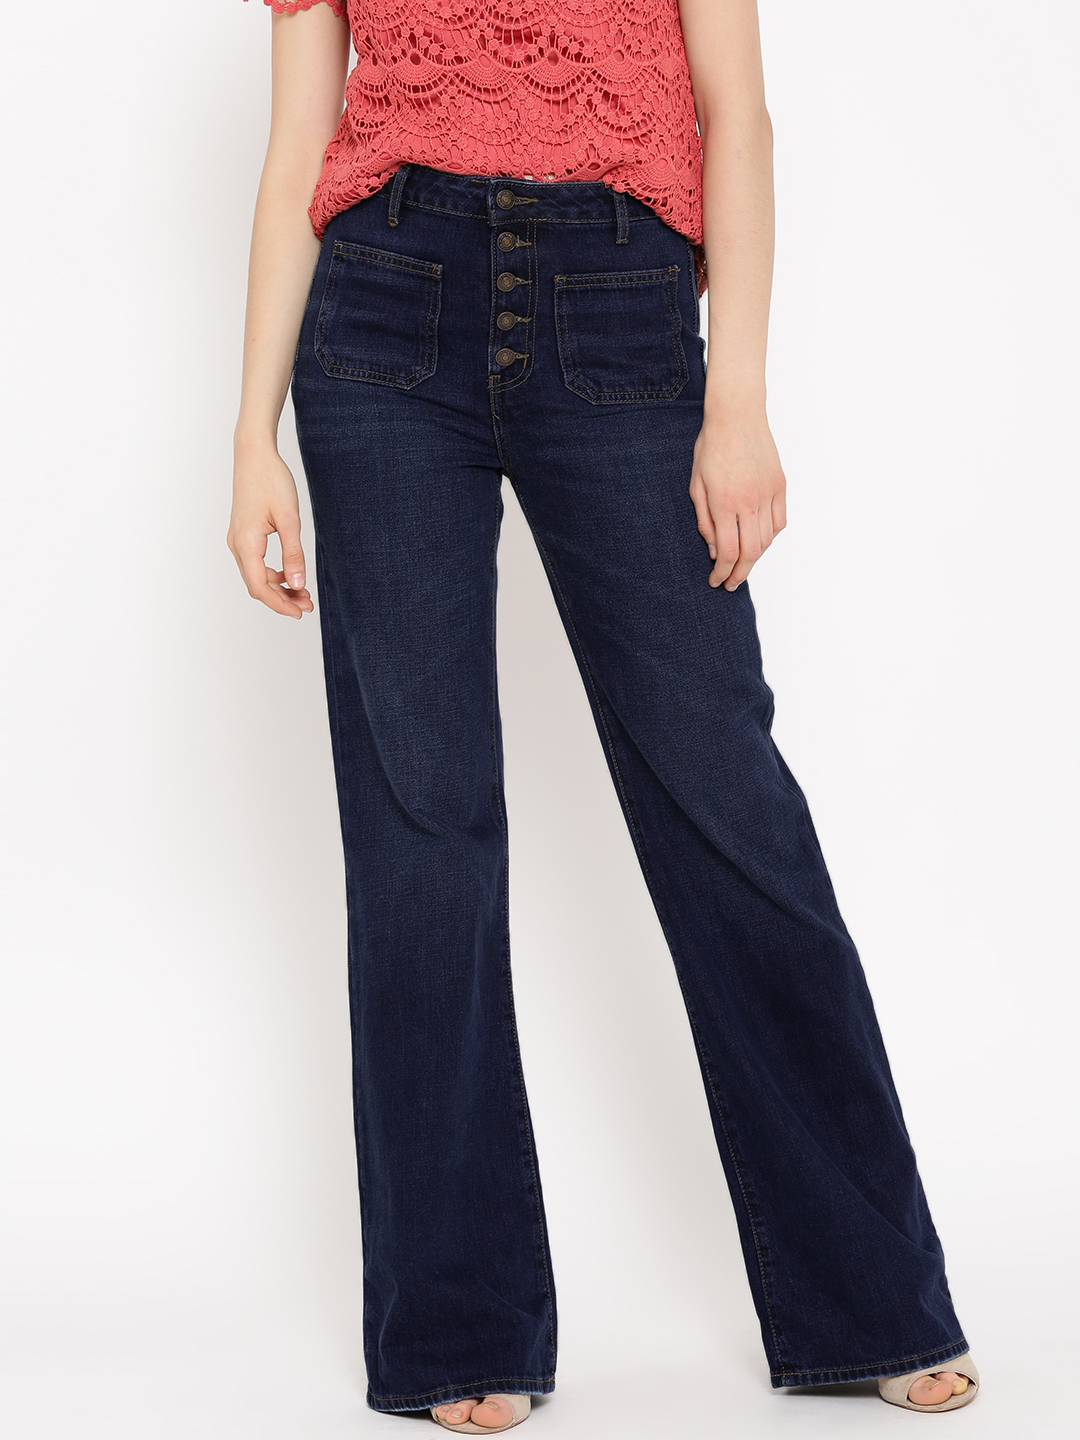 Forever 21 Women Navy Mid-Rise Clean Look Bootcut Jeans